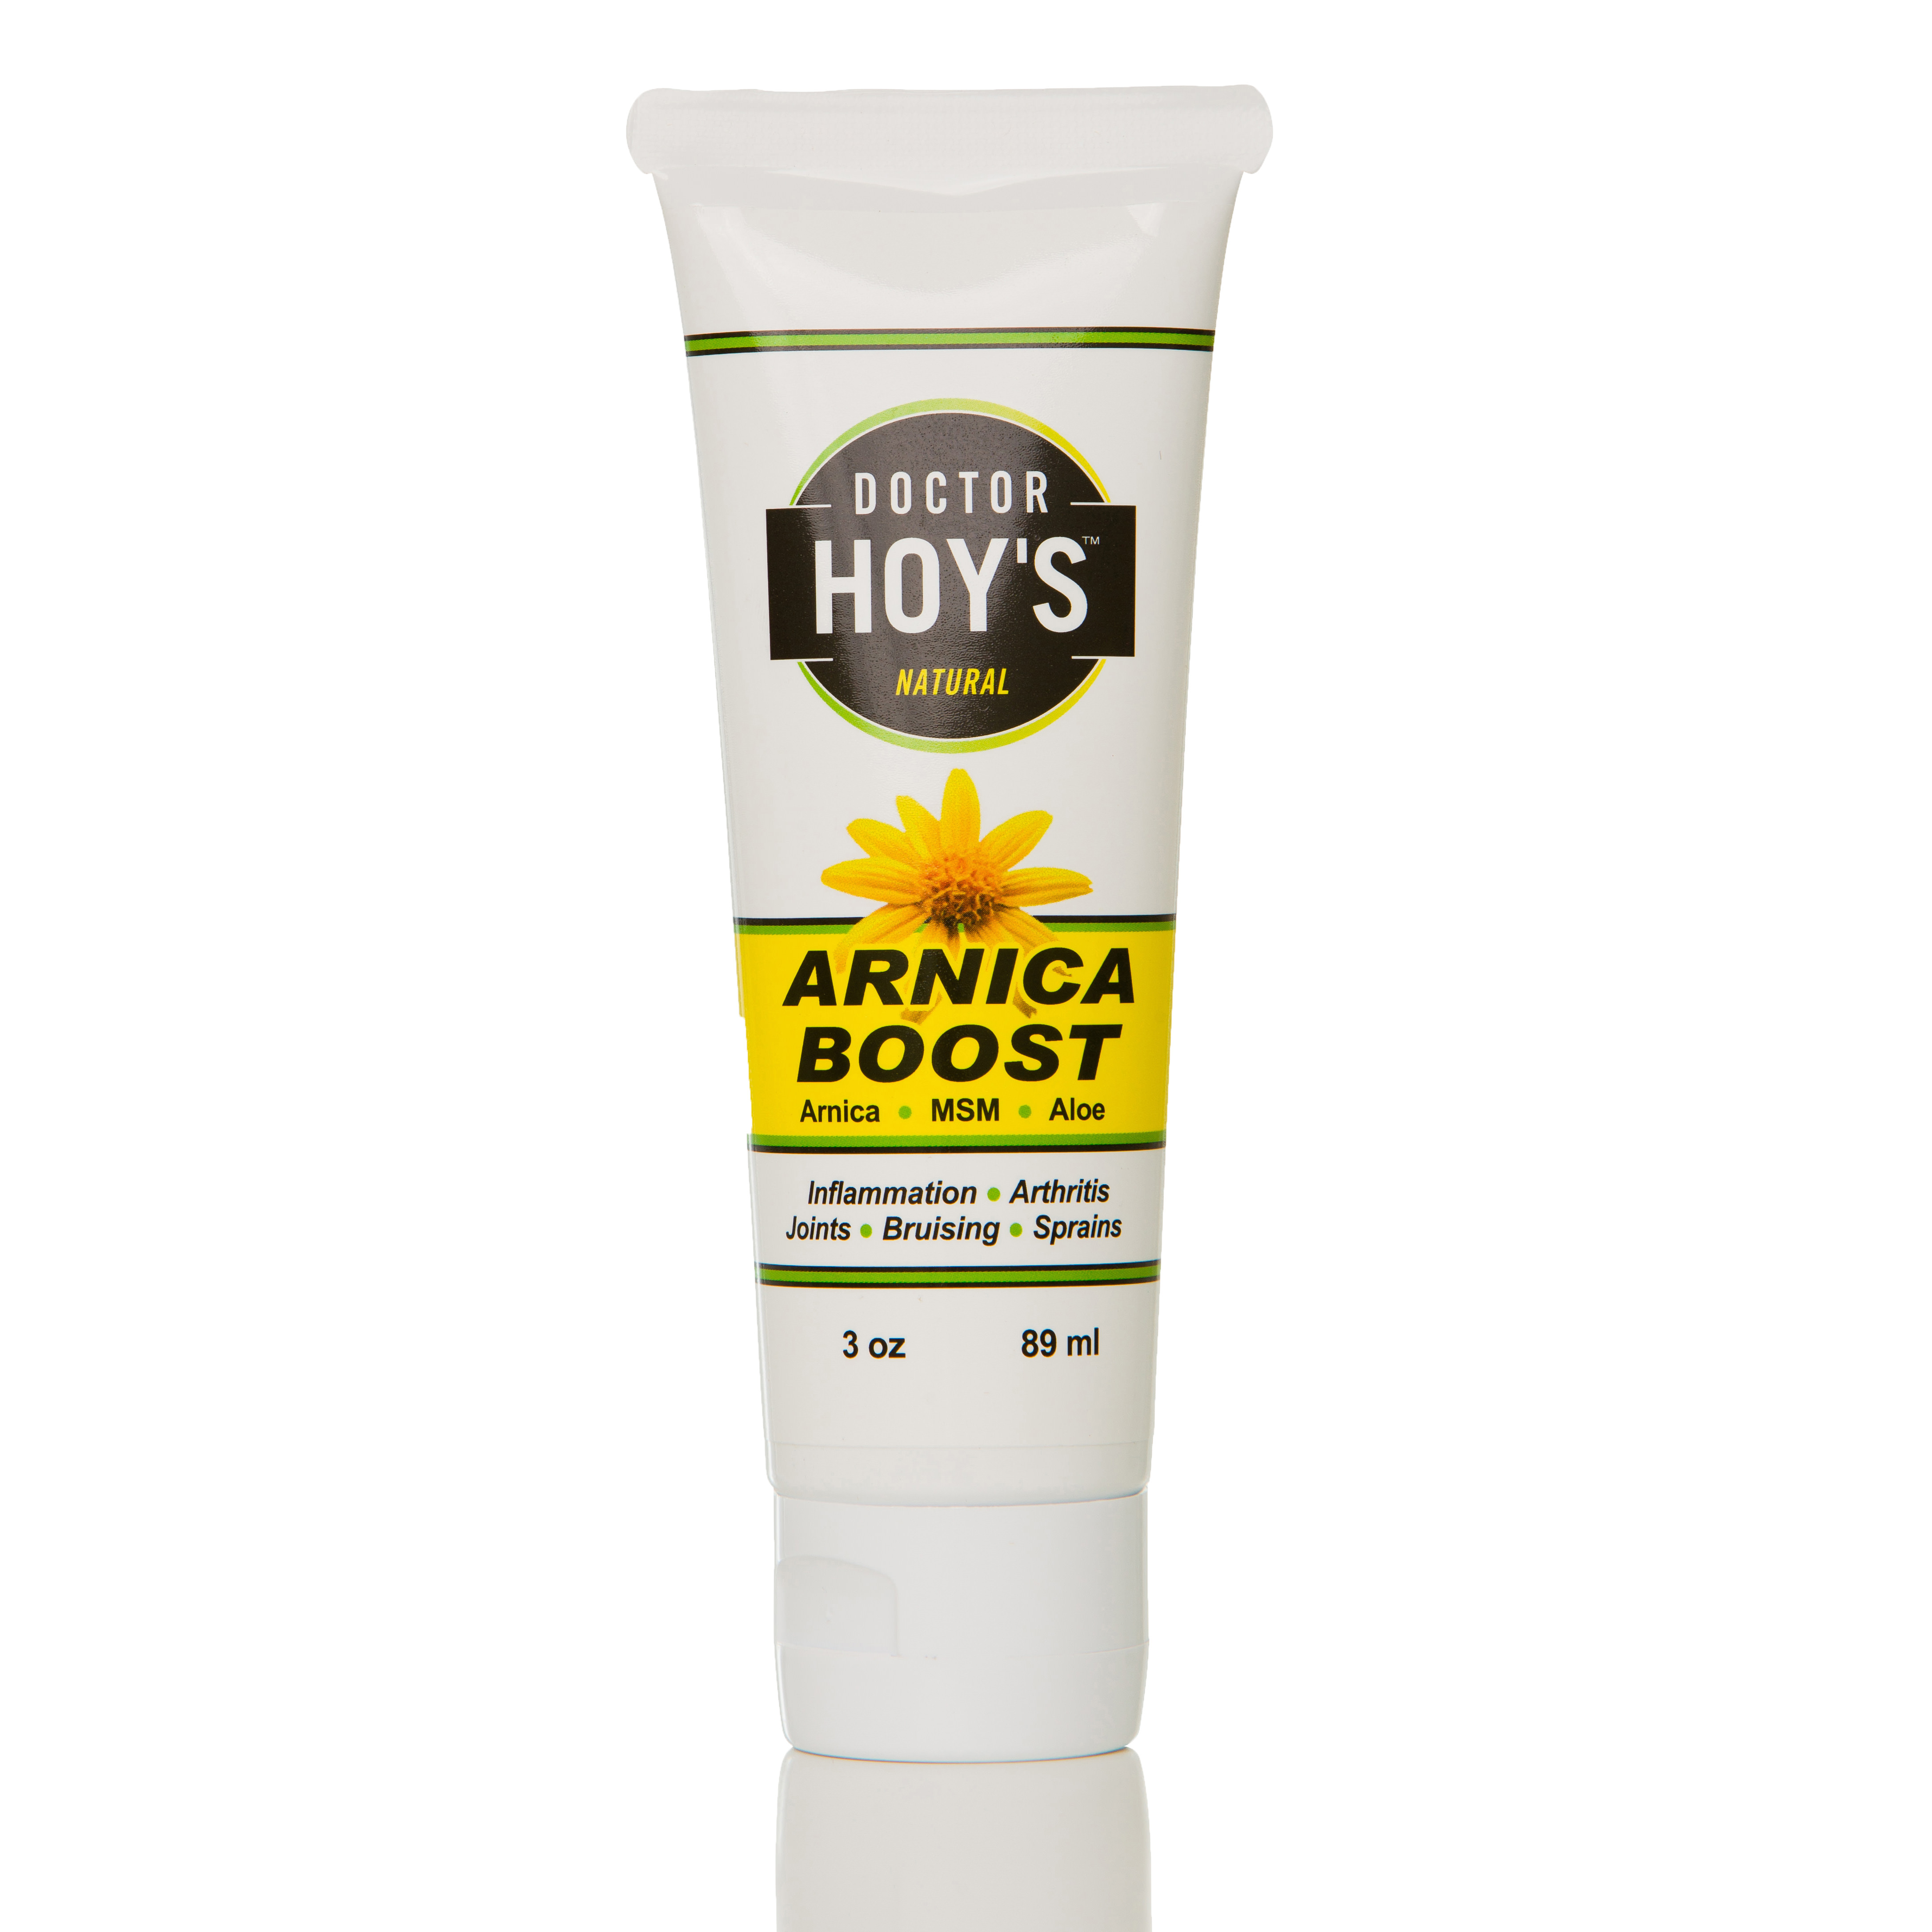 Doctor Hoy's Arnica Boost